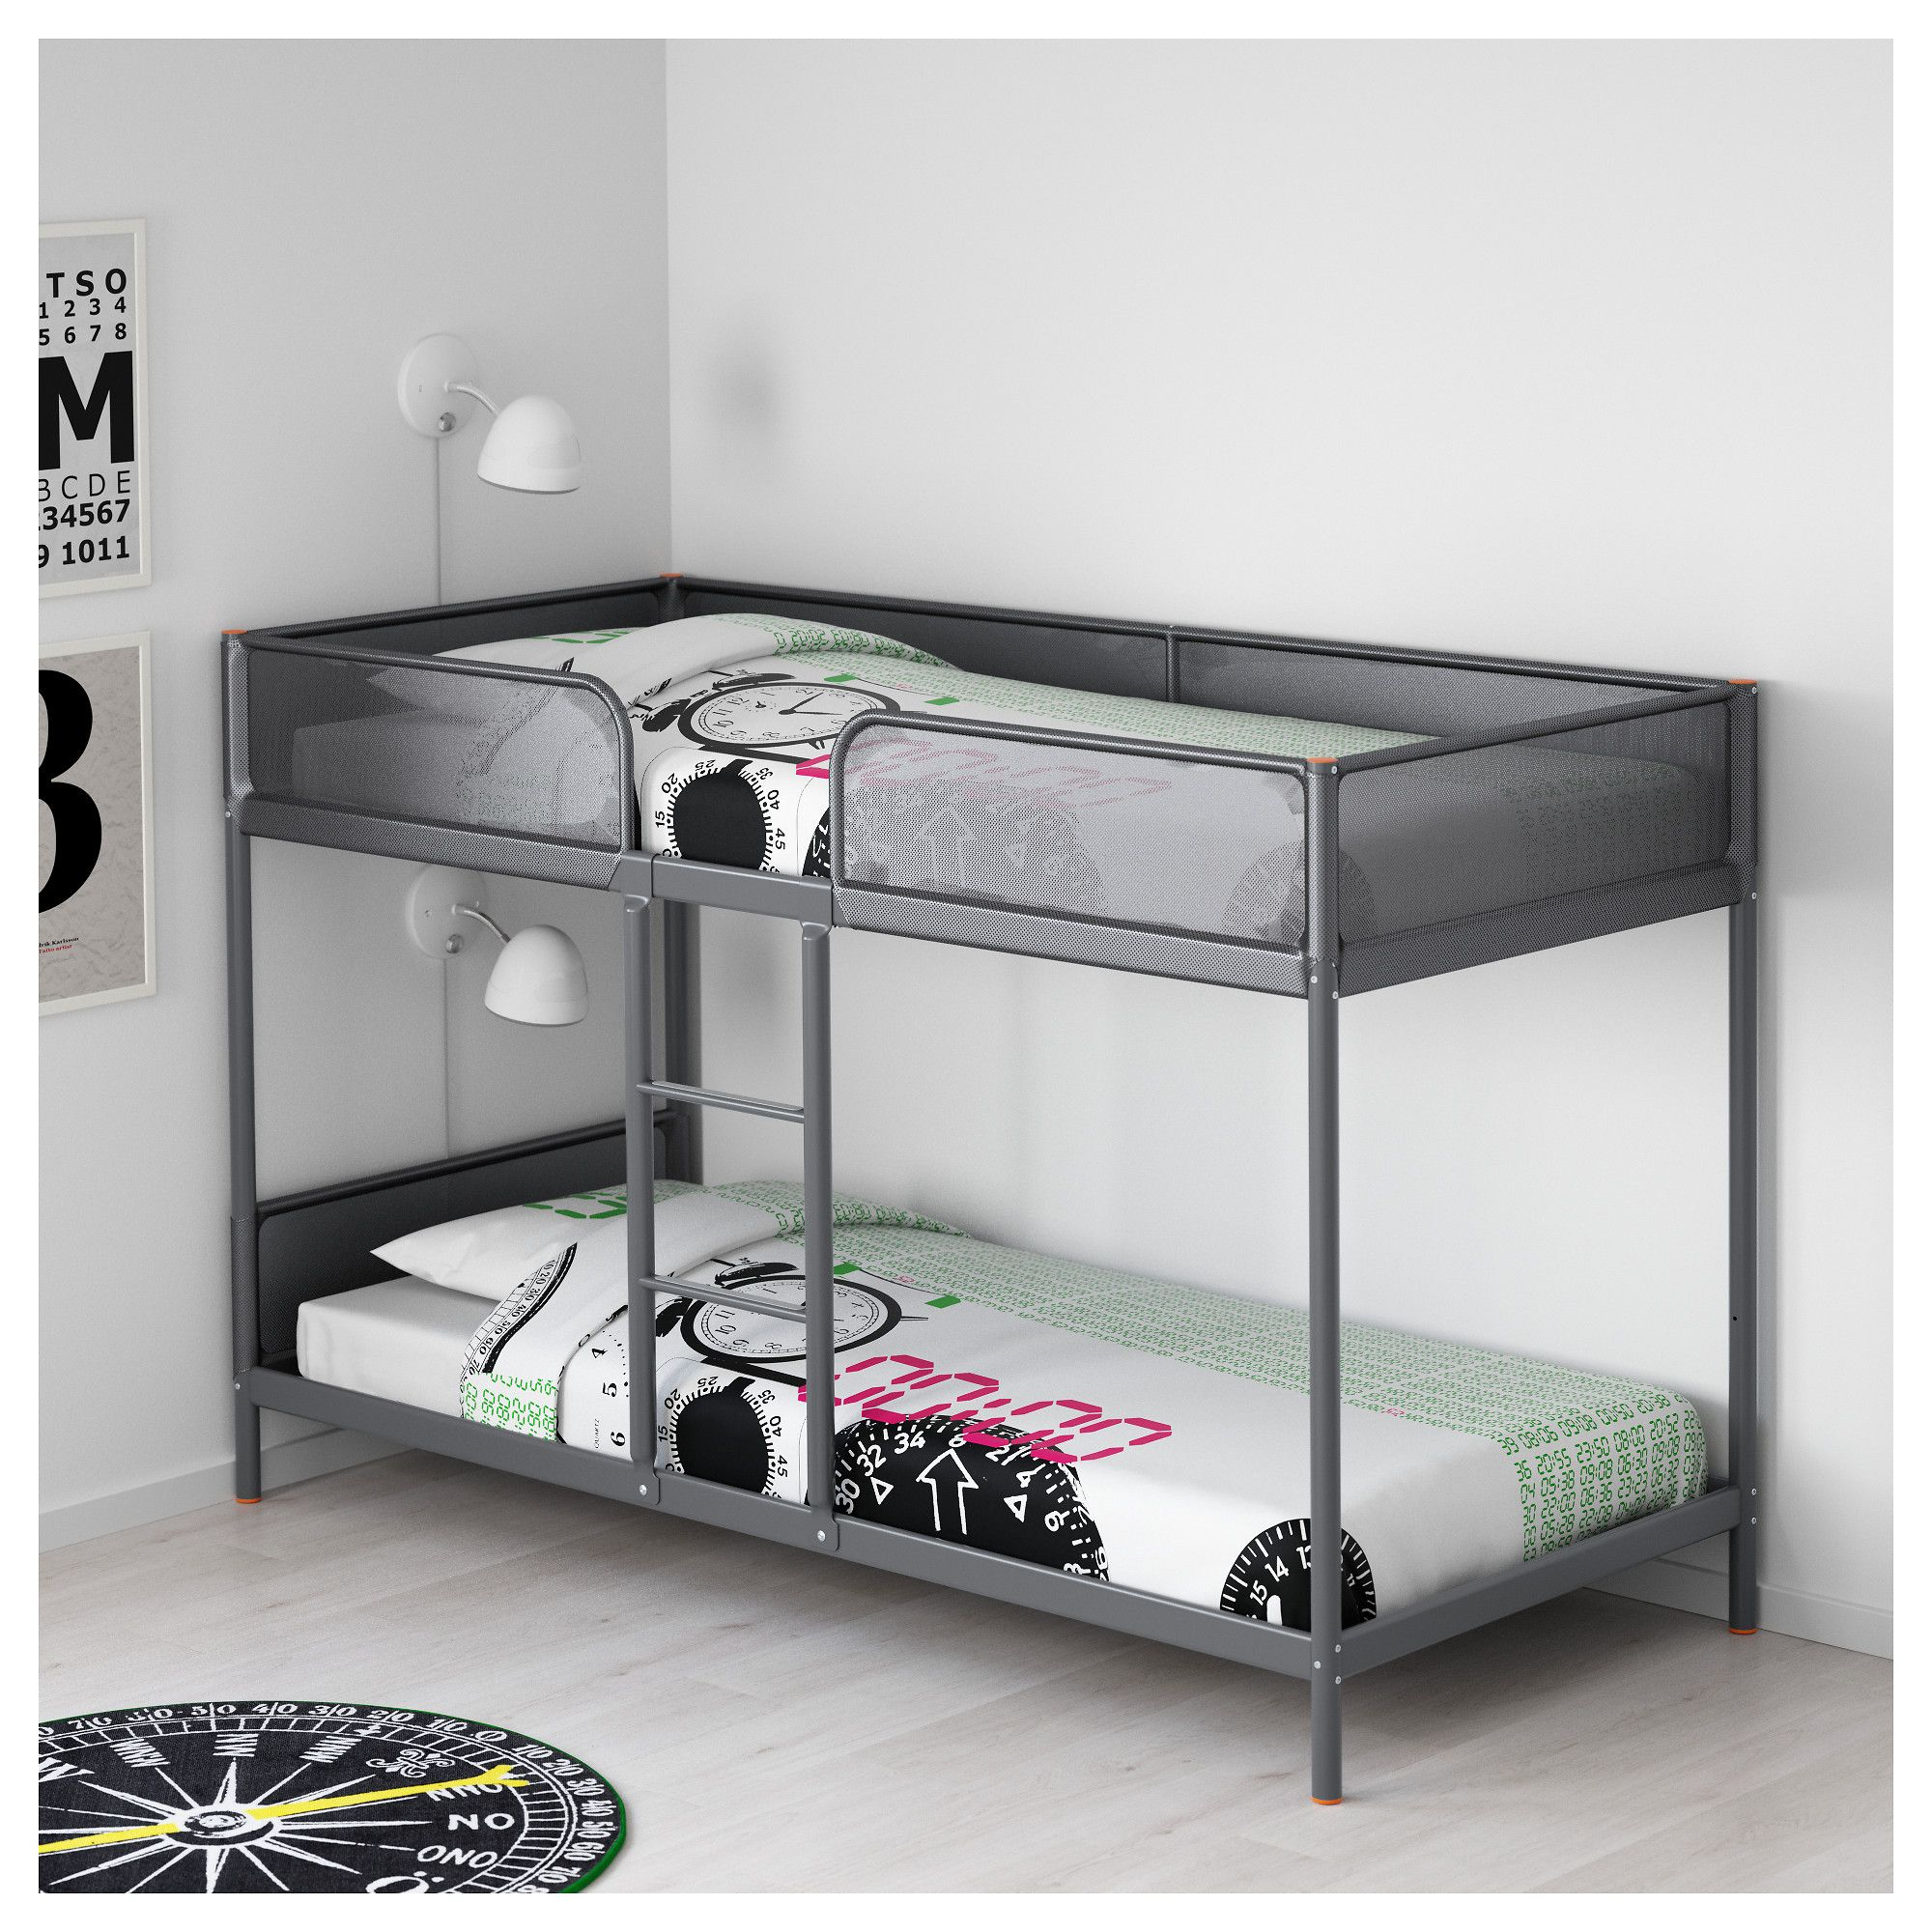 IKEA TUFFING Bunk Bed Frame A Good Solution Where Space Is Limited